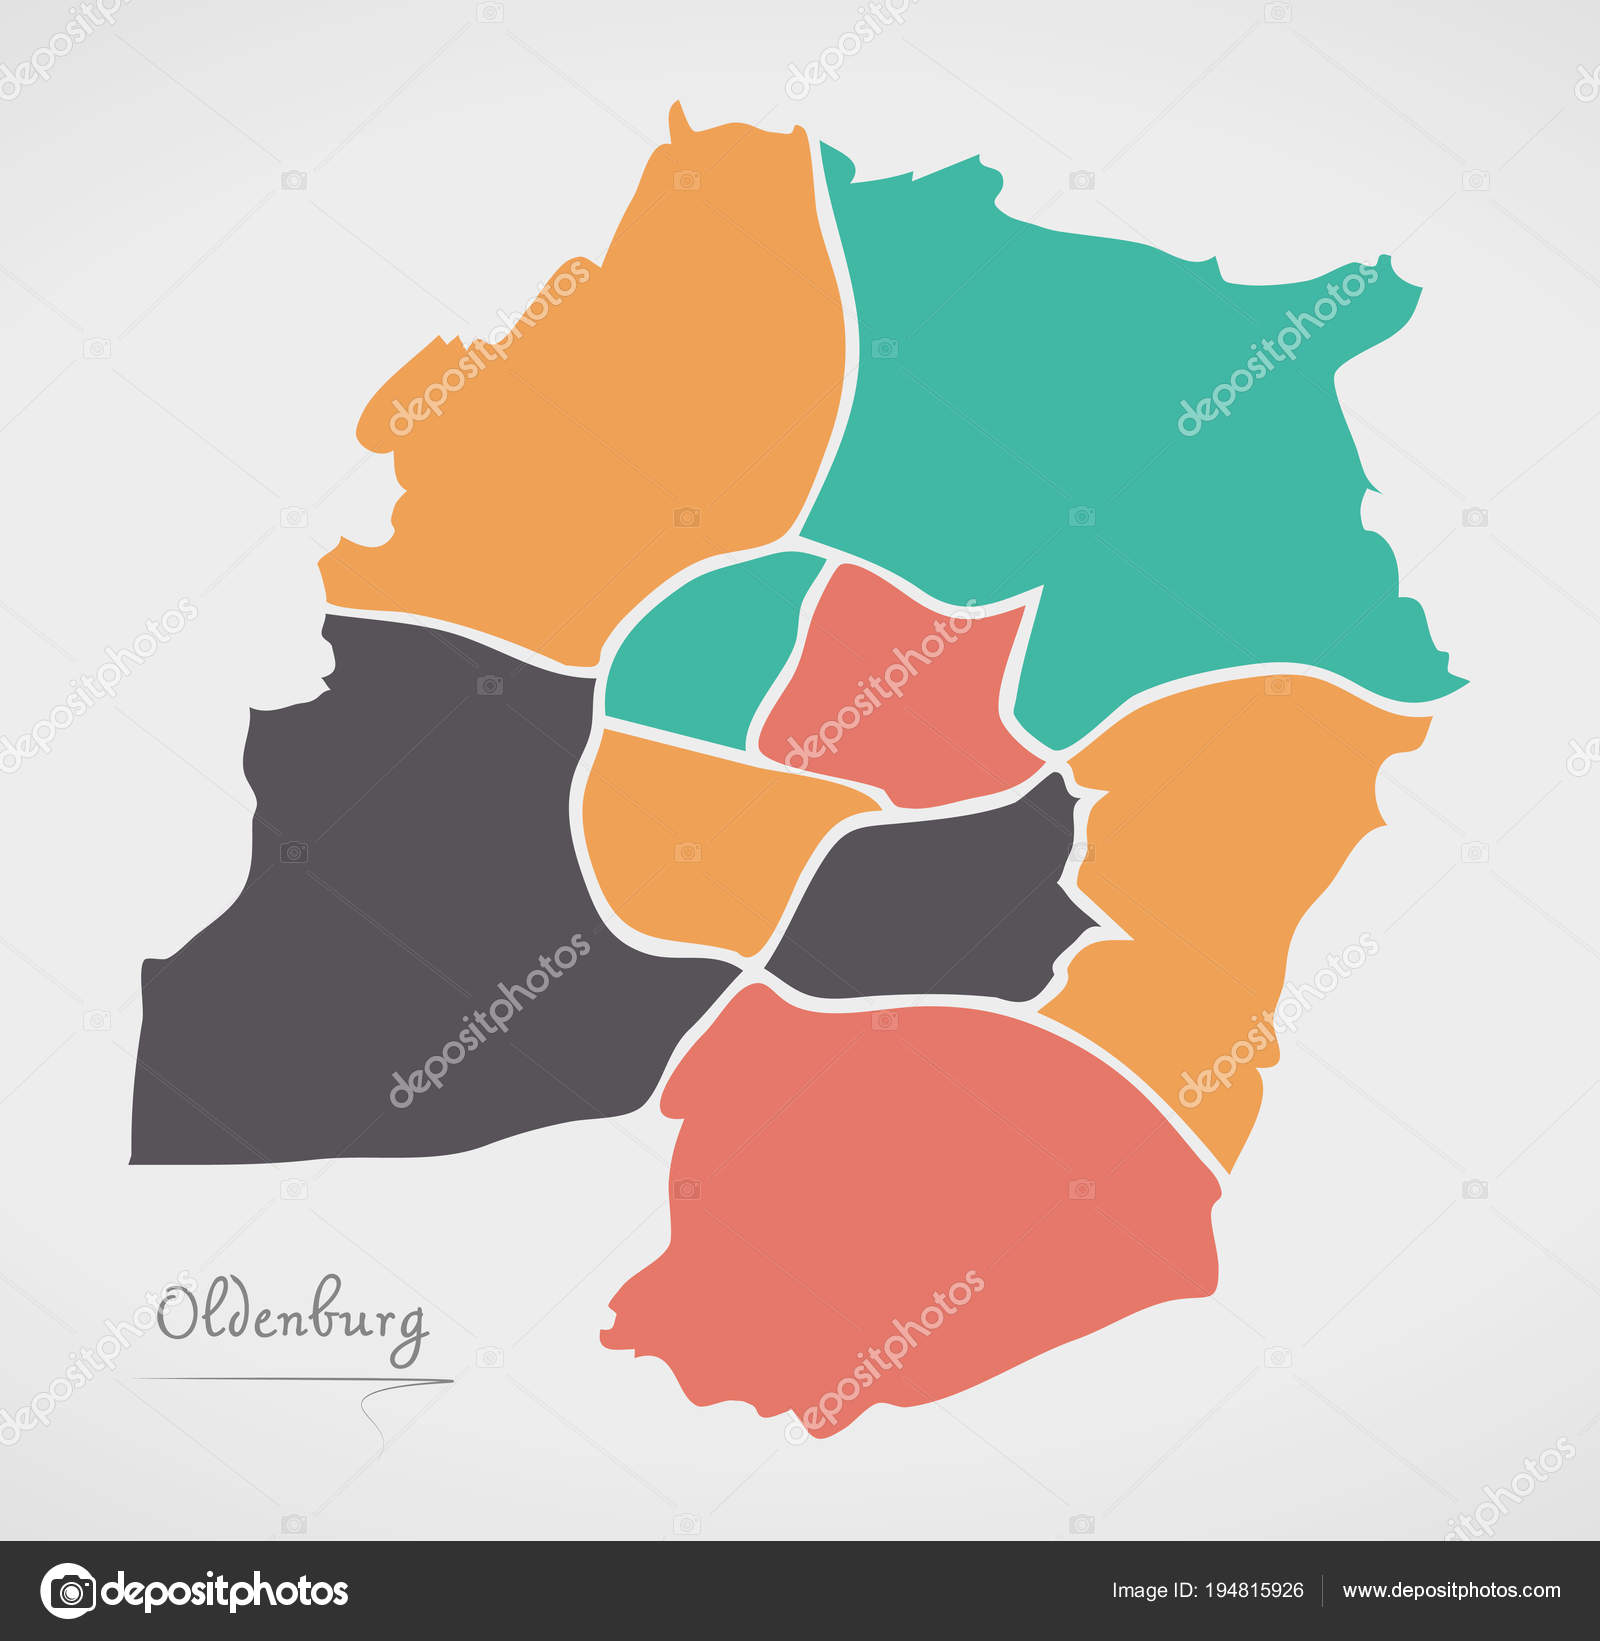 Oldenburg Map With Boroughs And Modern Round Shapes Stock Vector